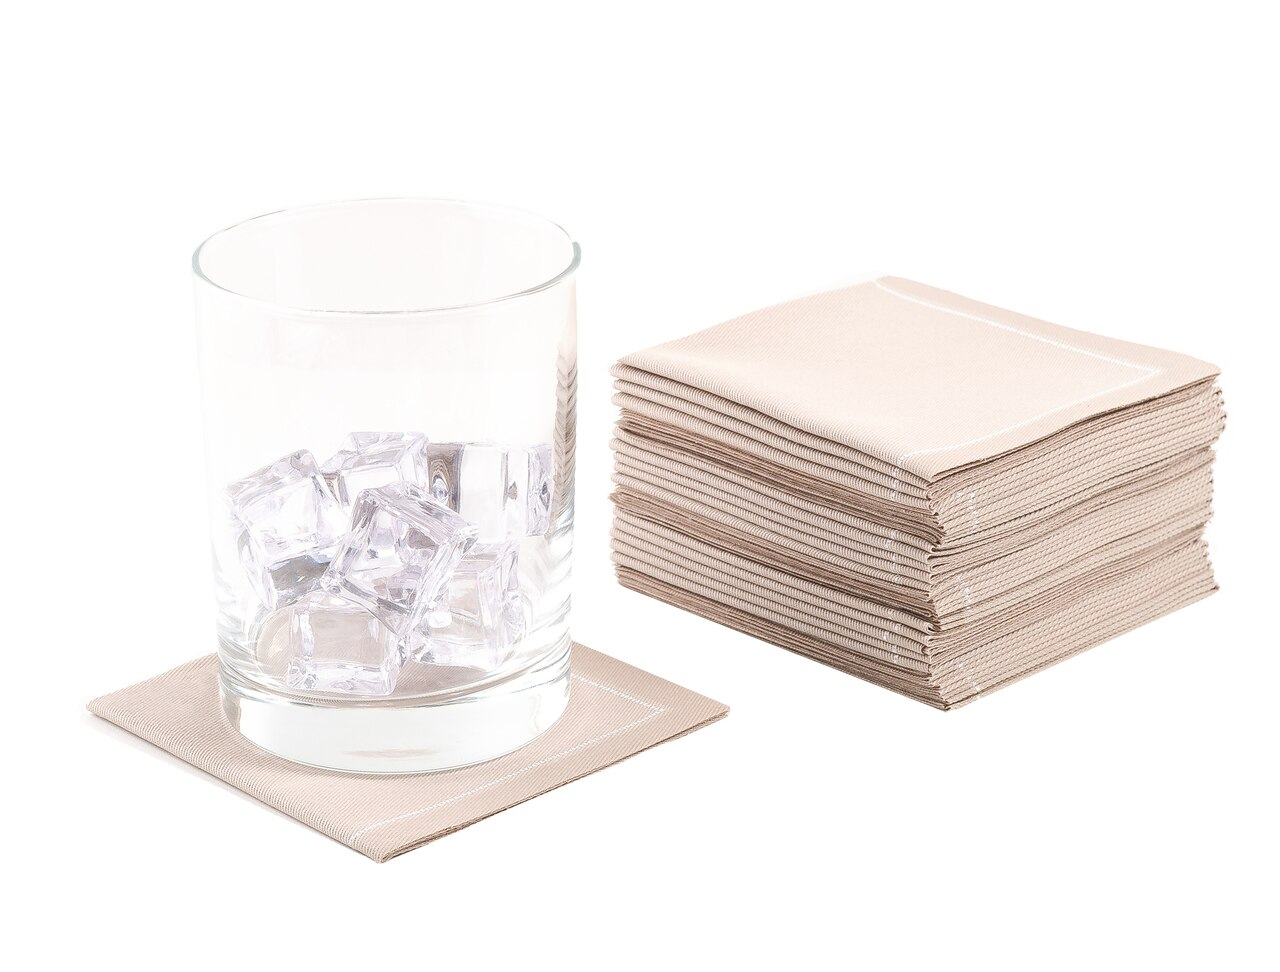 "Sand Cotton 1/4 Fold Cocktail Premium - 8"" x 8"" (folded 4"" x 4"") - 30 units"